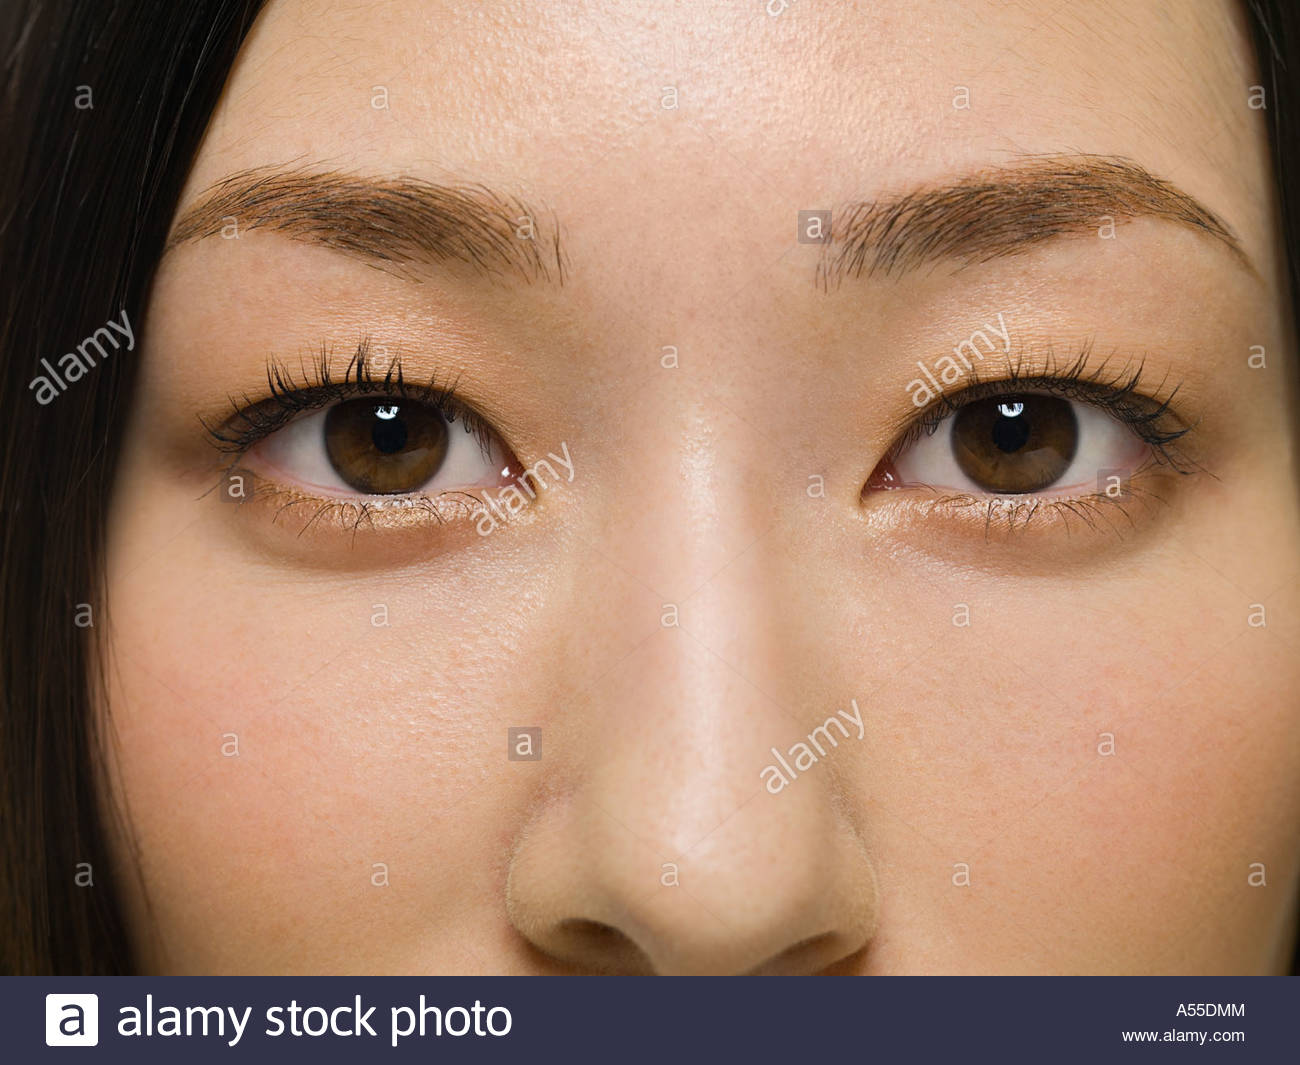 Young womans eyes - Stock Image